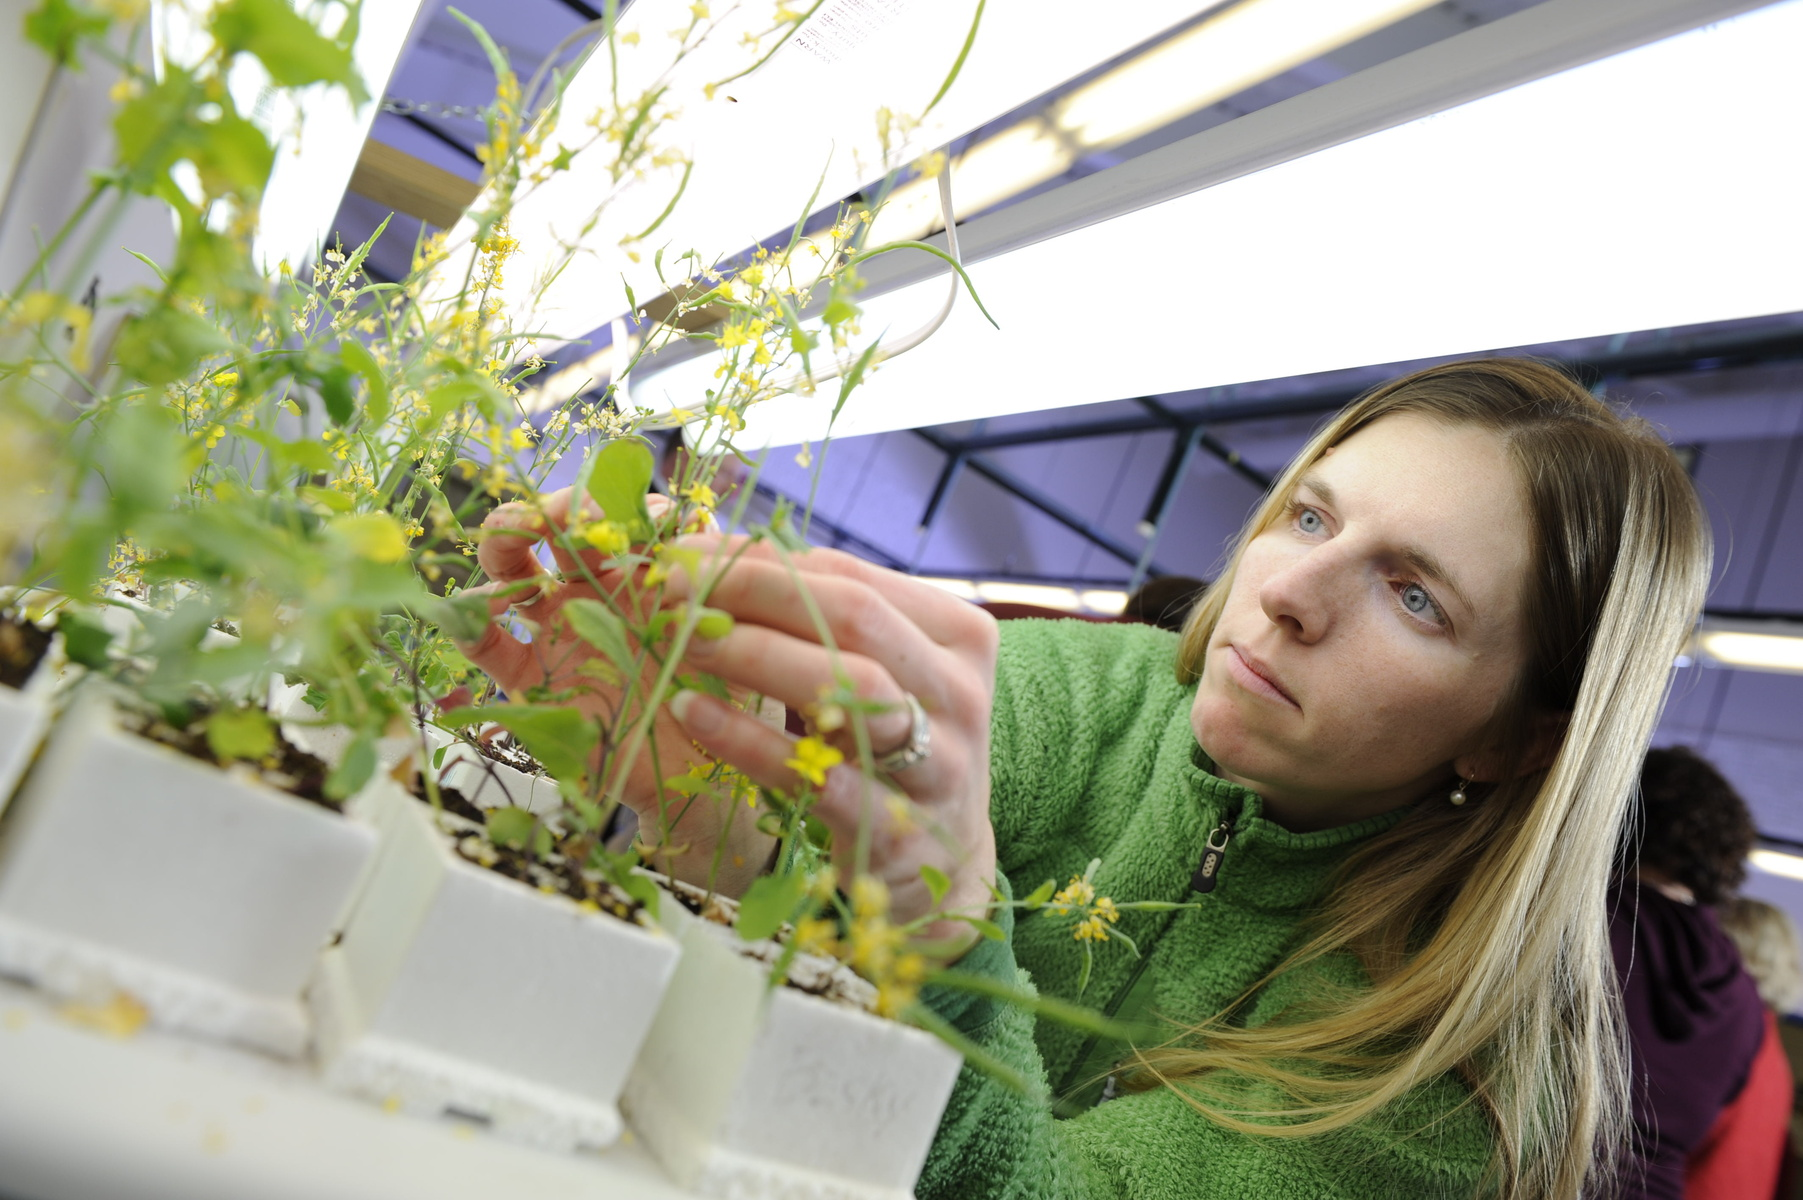 A female student tends to plants in a greenhouse